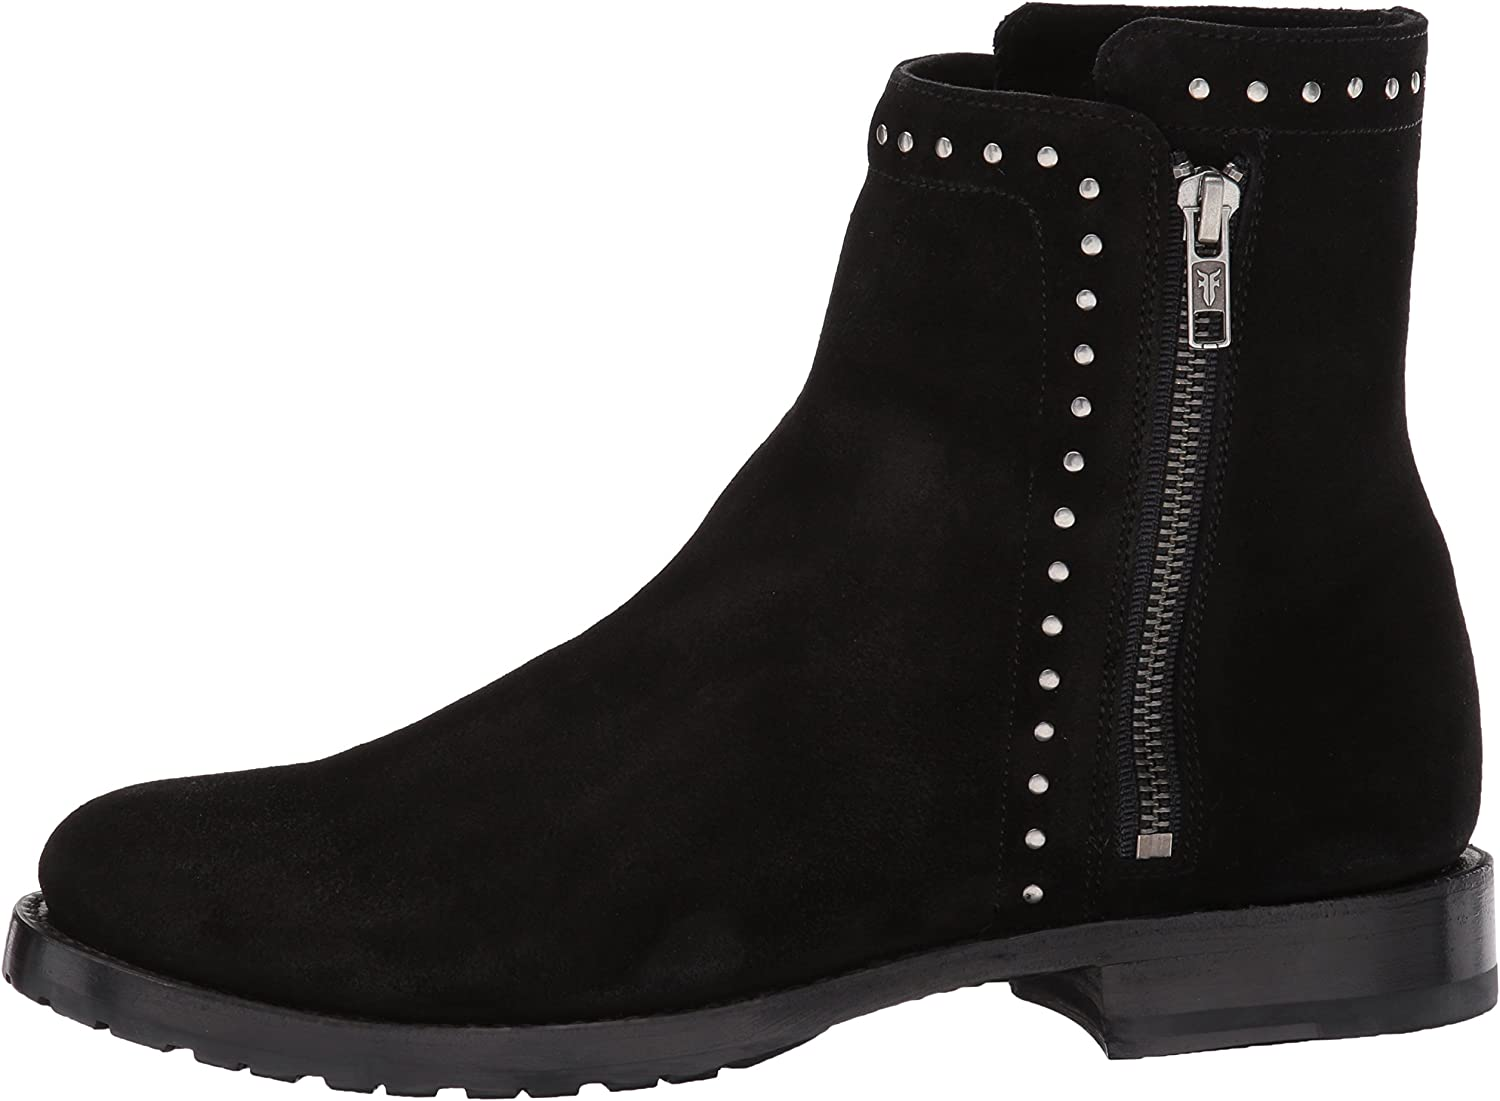 Frye Womens Nora Stud Short Inside Zip Boot